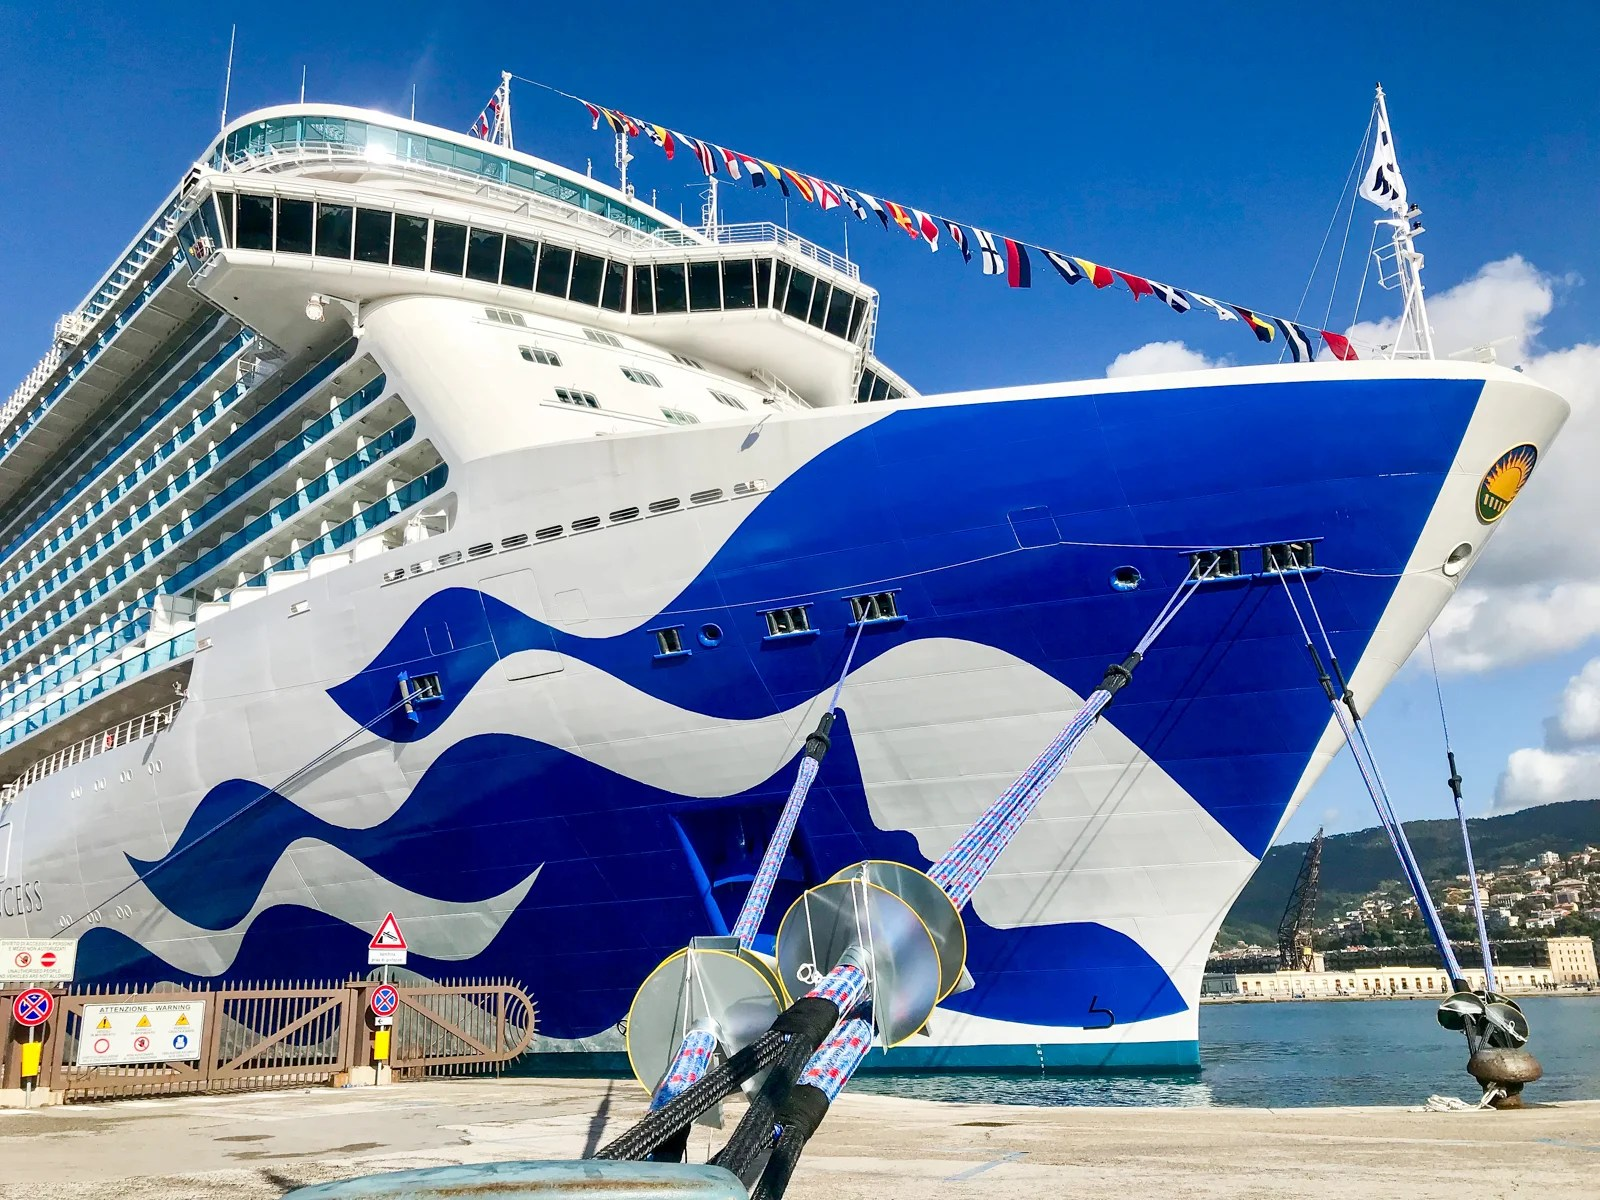 Everything cruisers need to know about the new Sky Princess ship